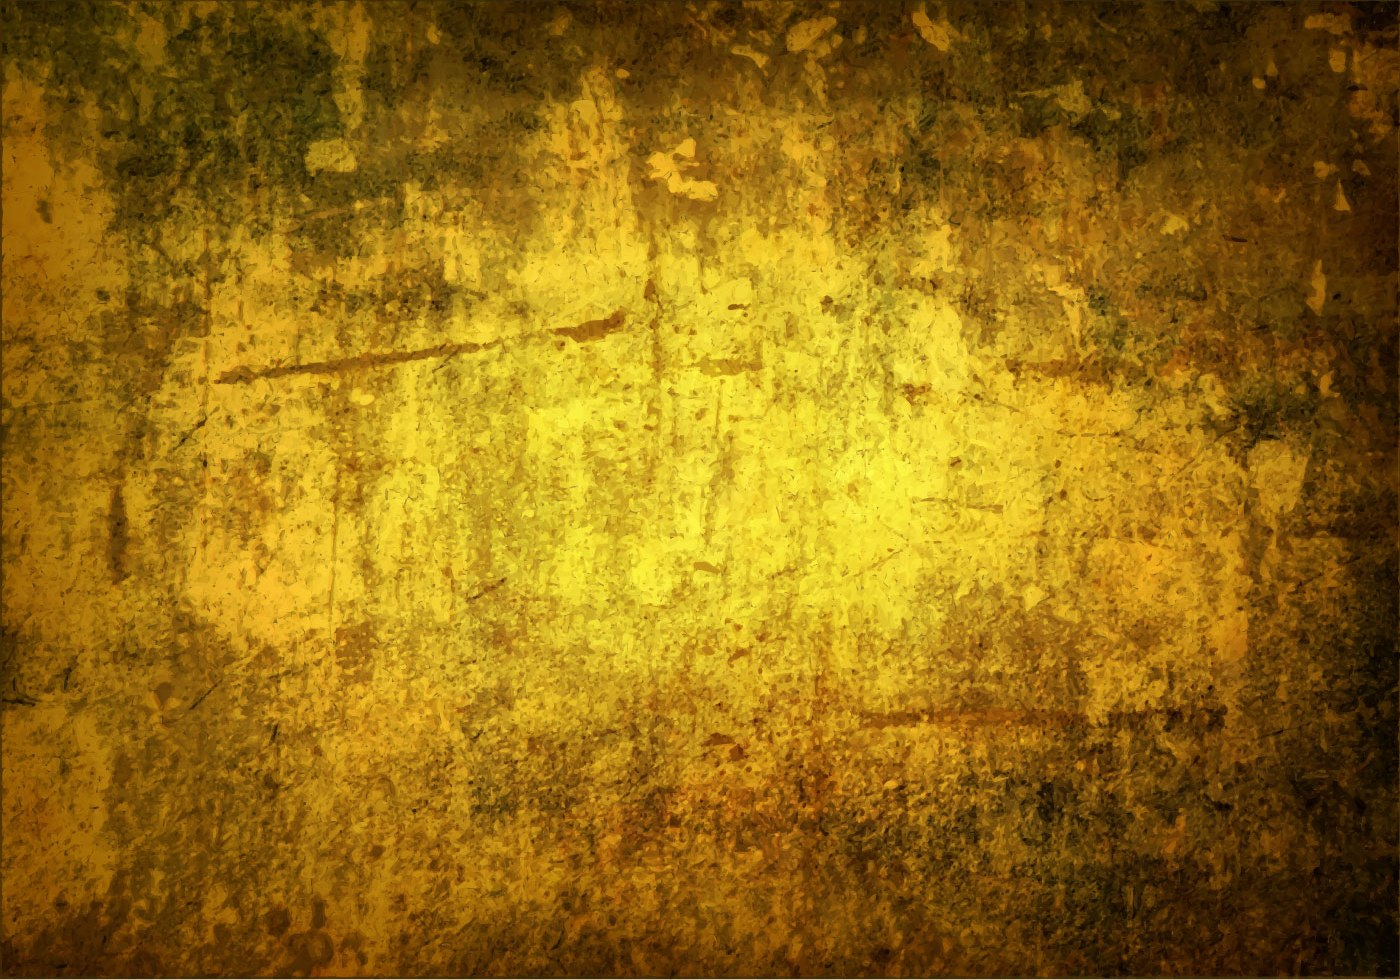 grunge rusty background texture - photo #26